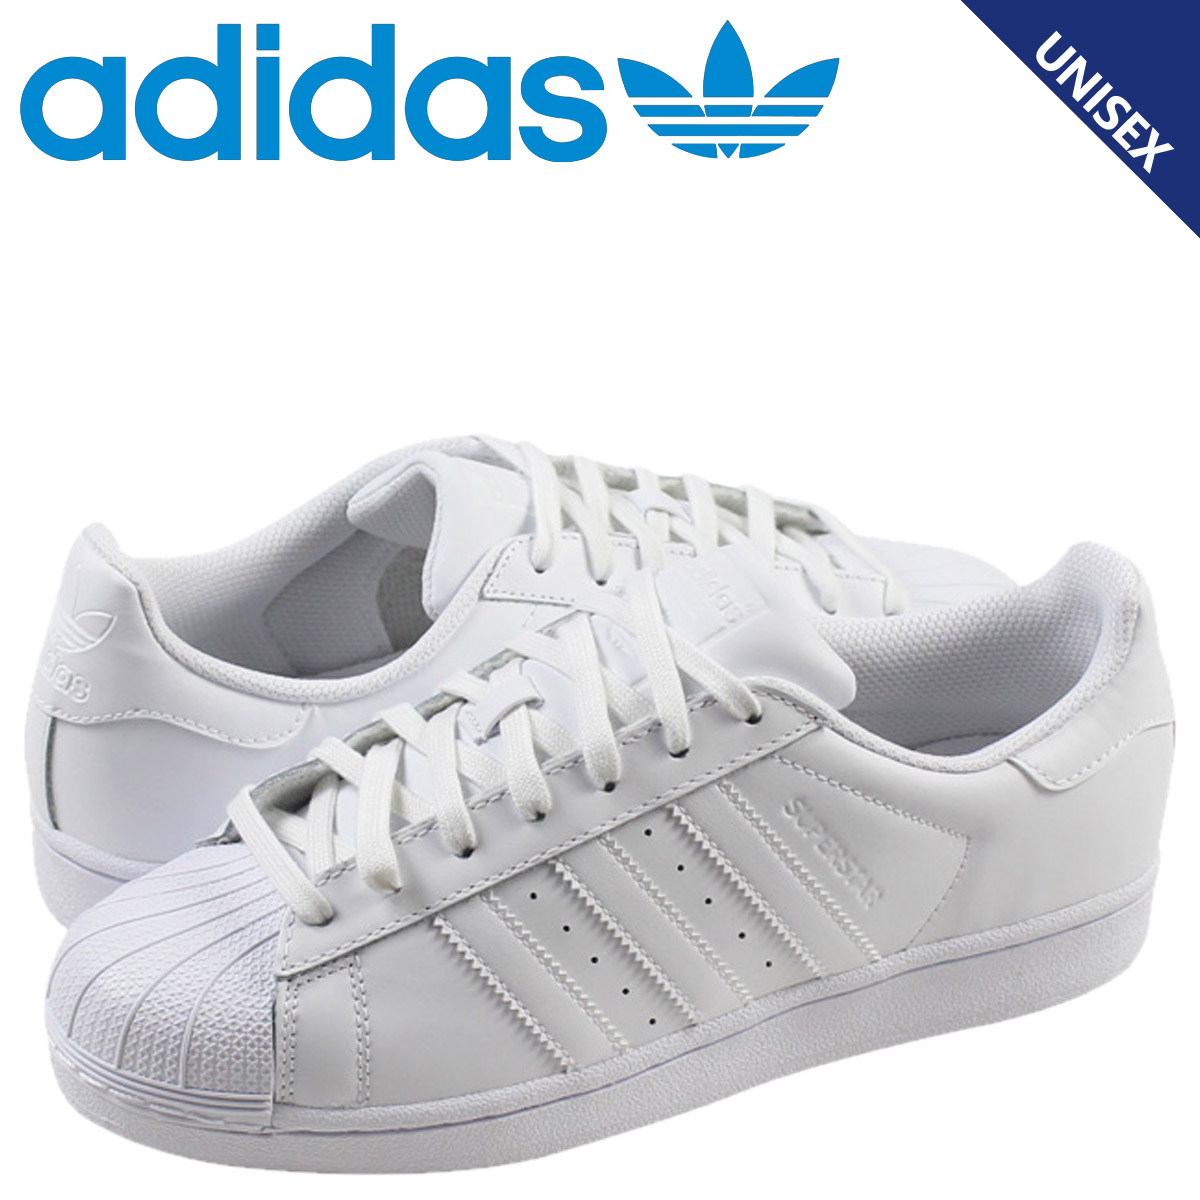 Adidas originals adidas Originals superstar sneakers SUPERSTAR FOUNDATION  B27136 men gap Dis shoes white e9d48bc87